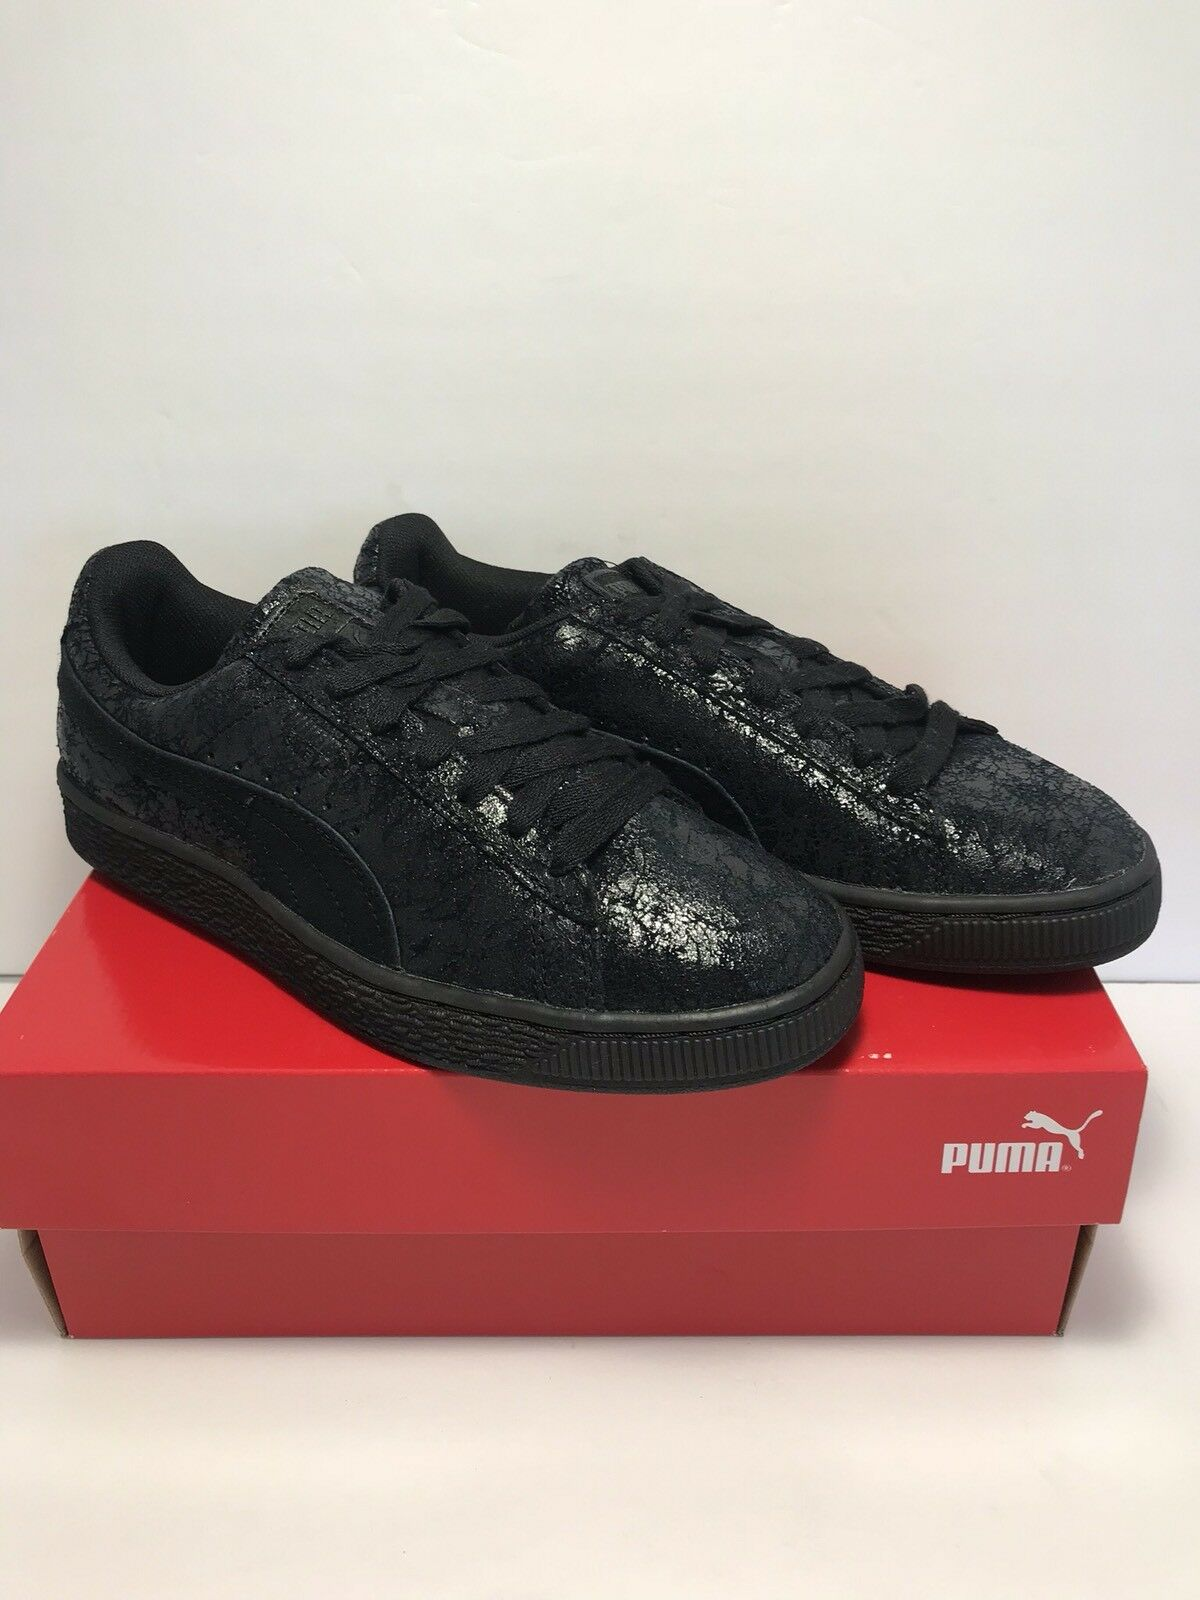 Puma Womens Size 9.5 Sneakers Suede Remaster Blavk Casual Sneakers 9.5 Shoes fa1b21